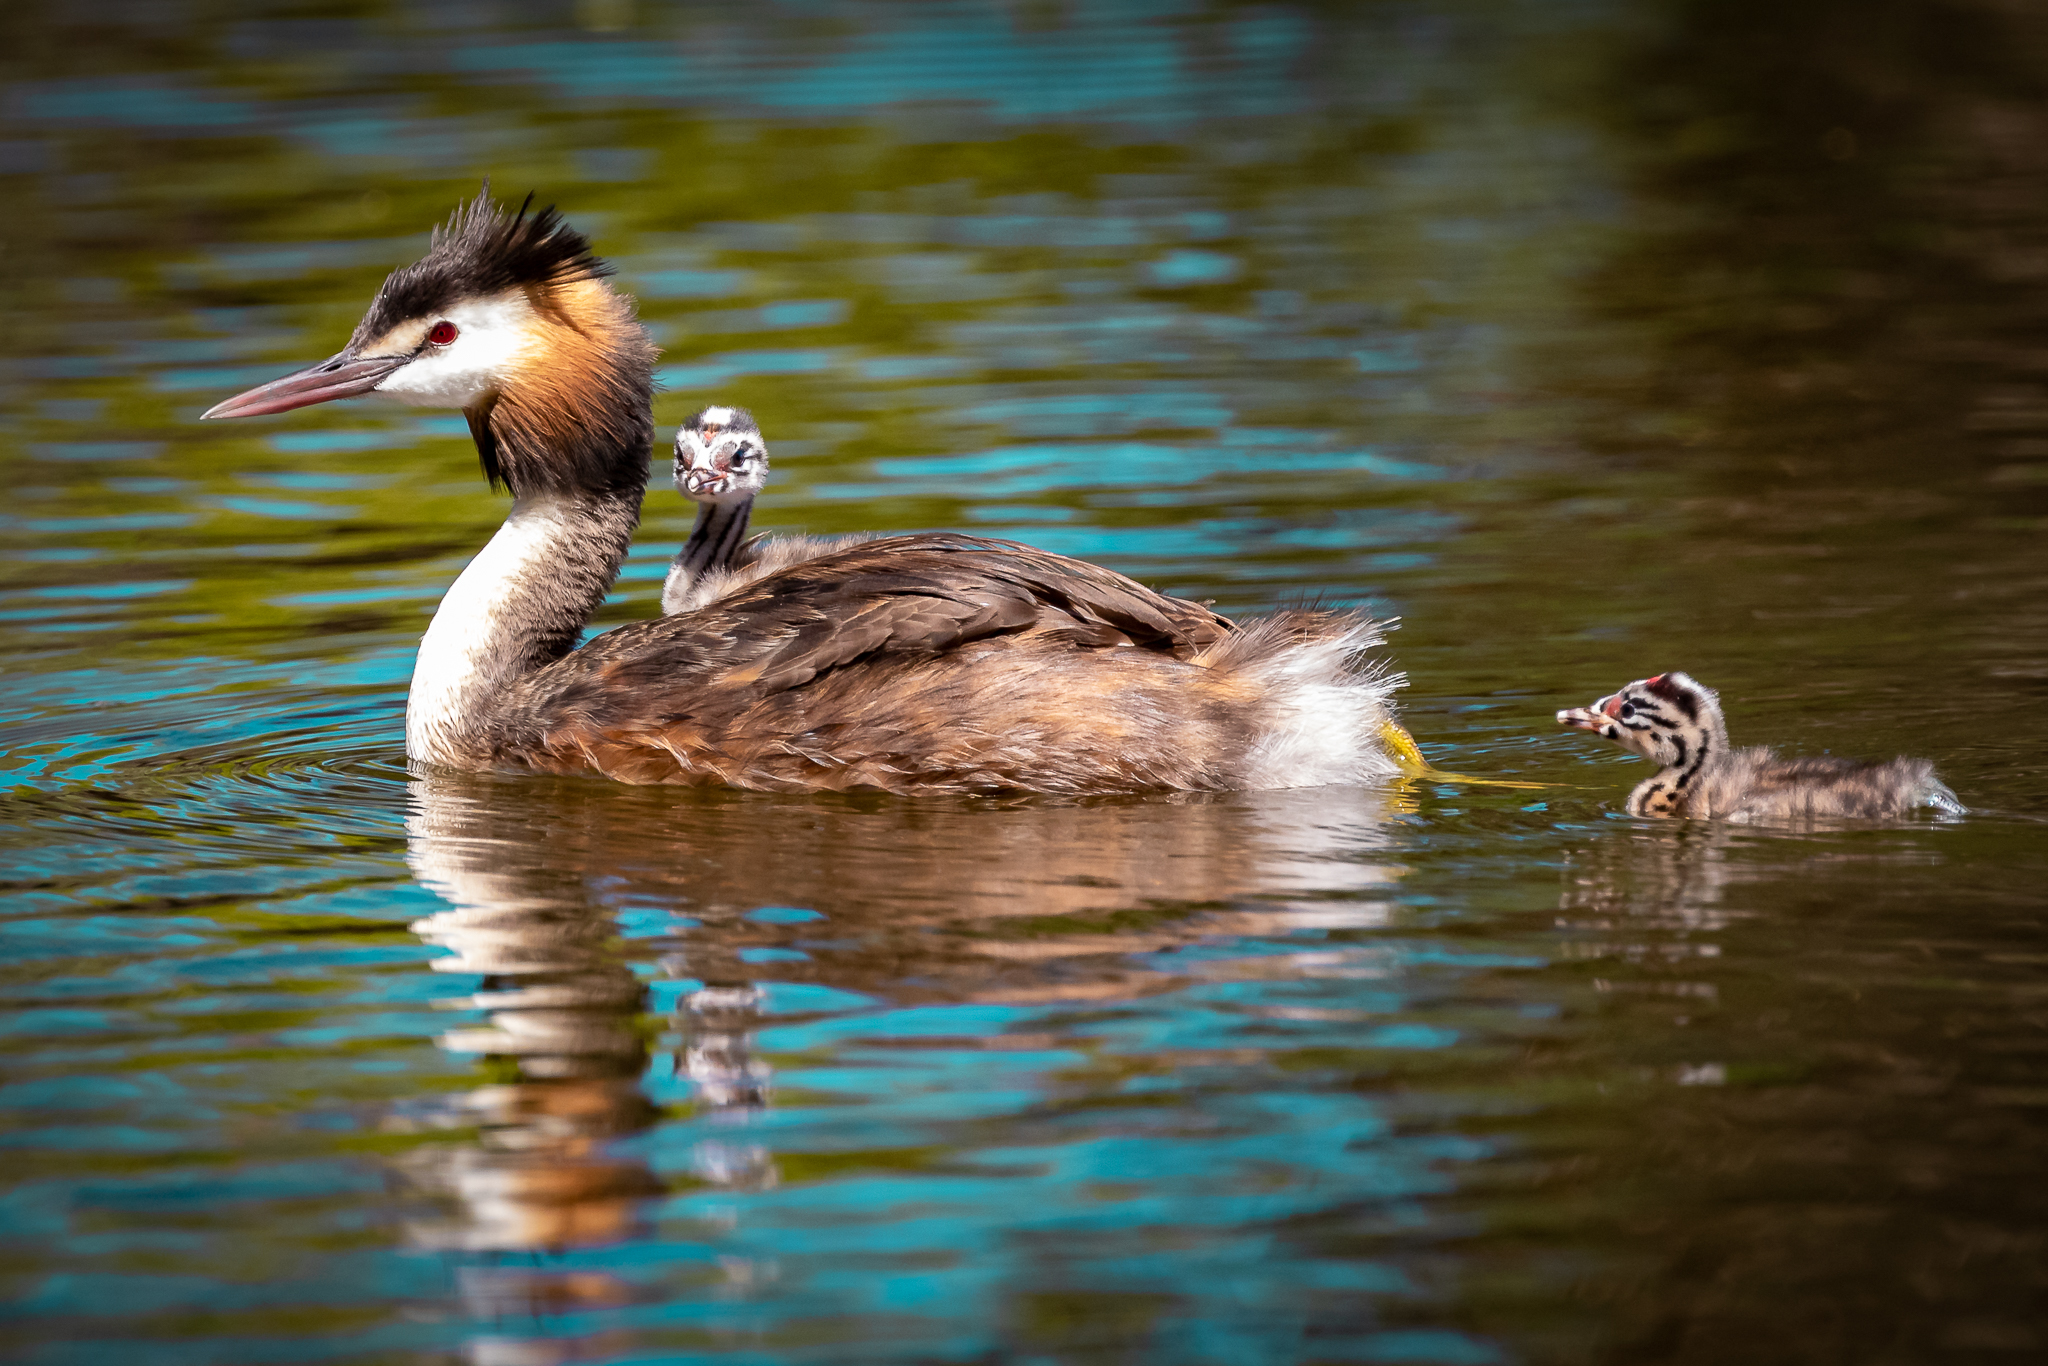 Herdsman Lake is a good place to view Great Crested Grebes (61 cm) and their families in action. Great Crested Grebes dive for fish and prefer diving to flying when disturbed. They are found in all Australian states.